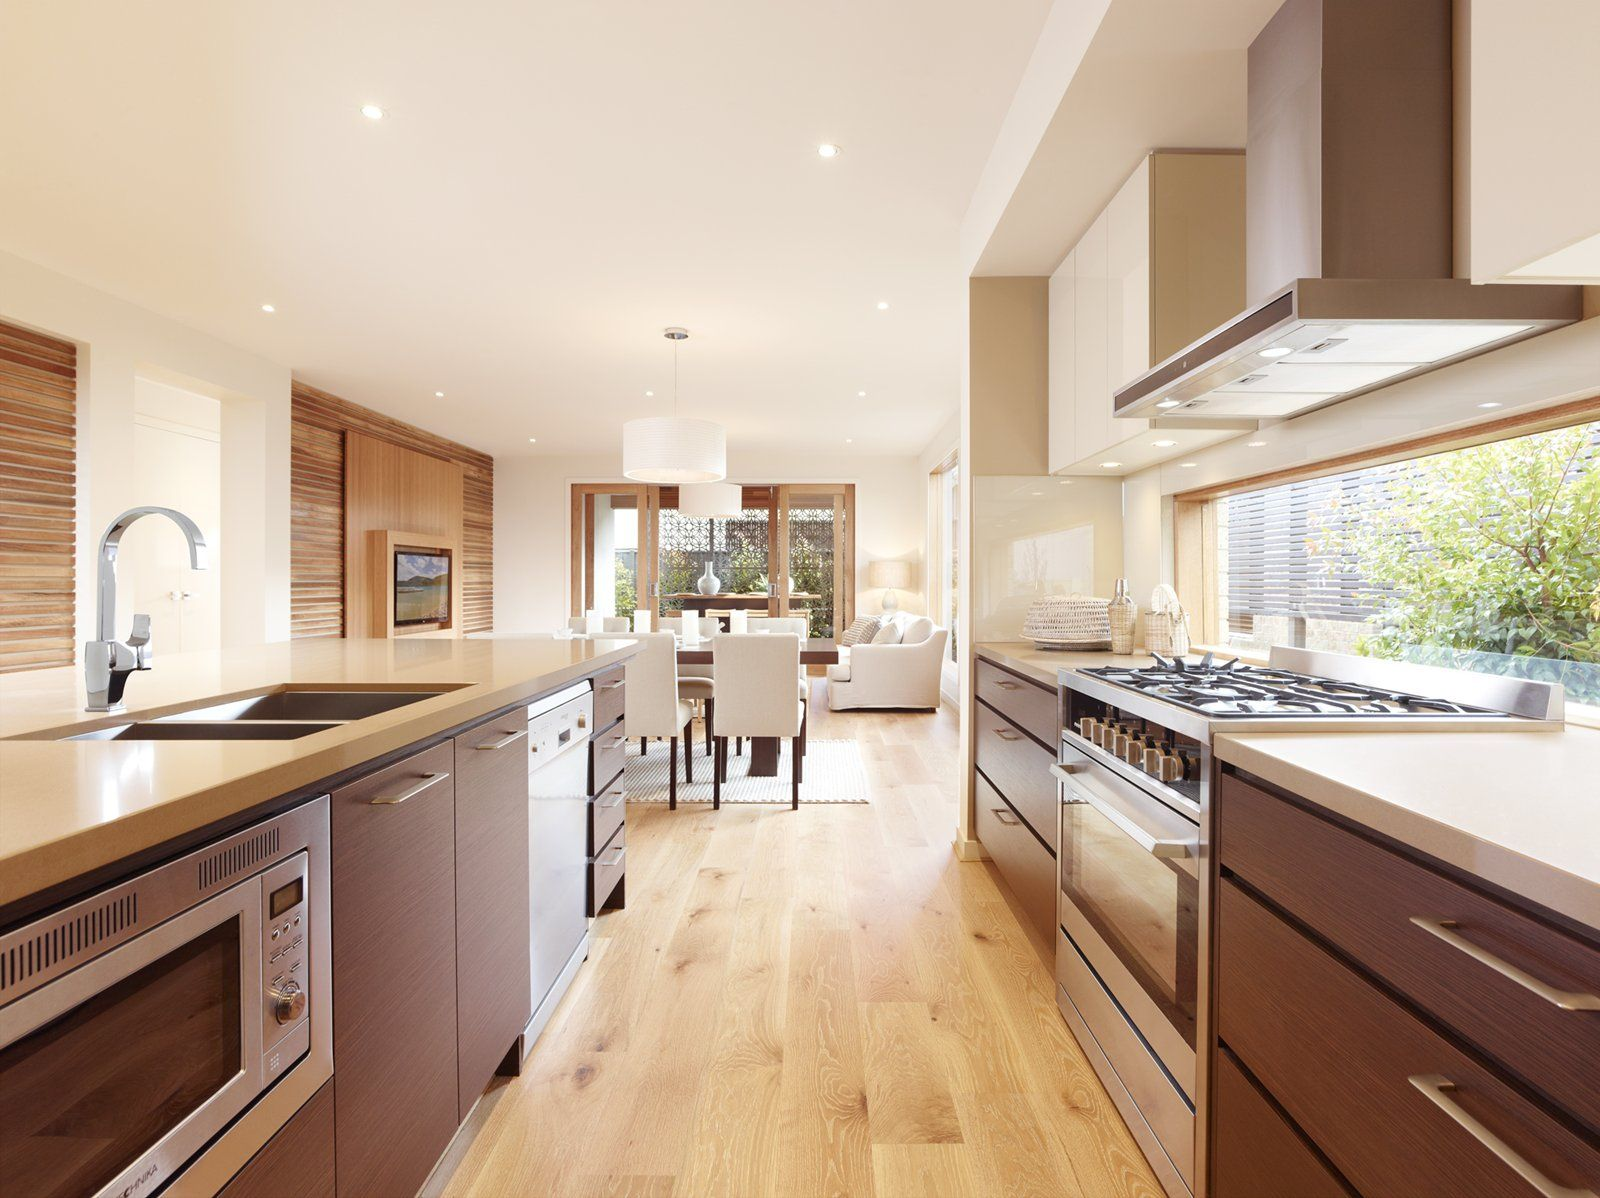 The Caspian Main Vue kitchen design | Architecture | Pinterest ...